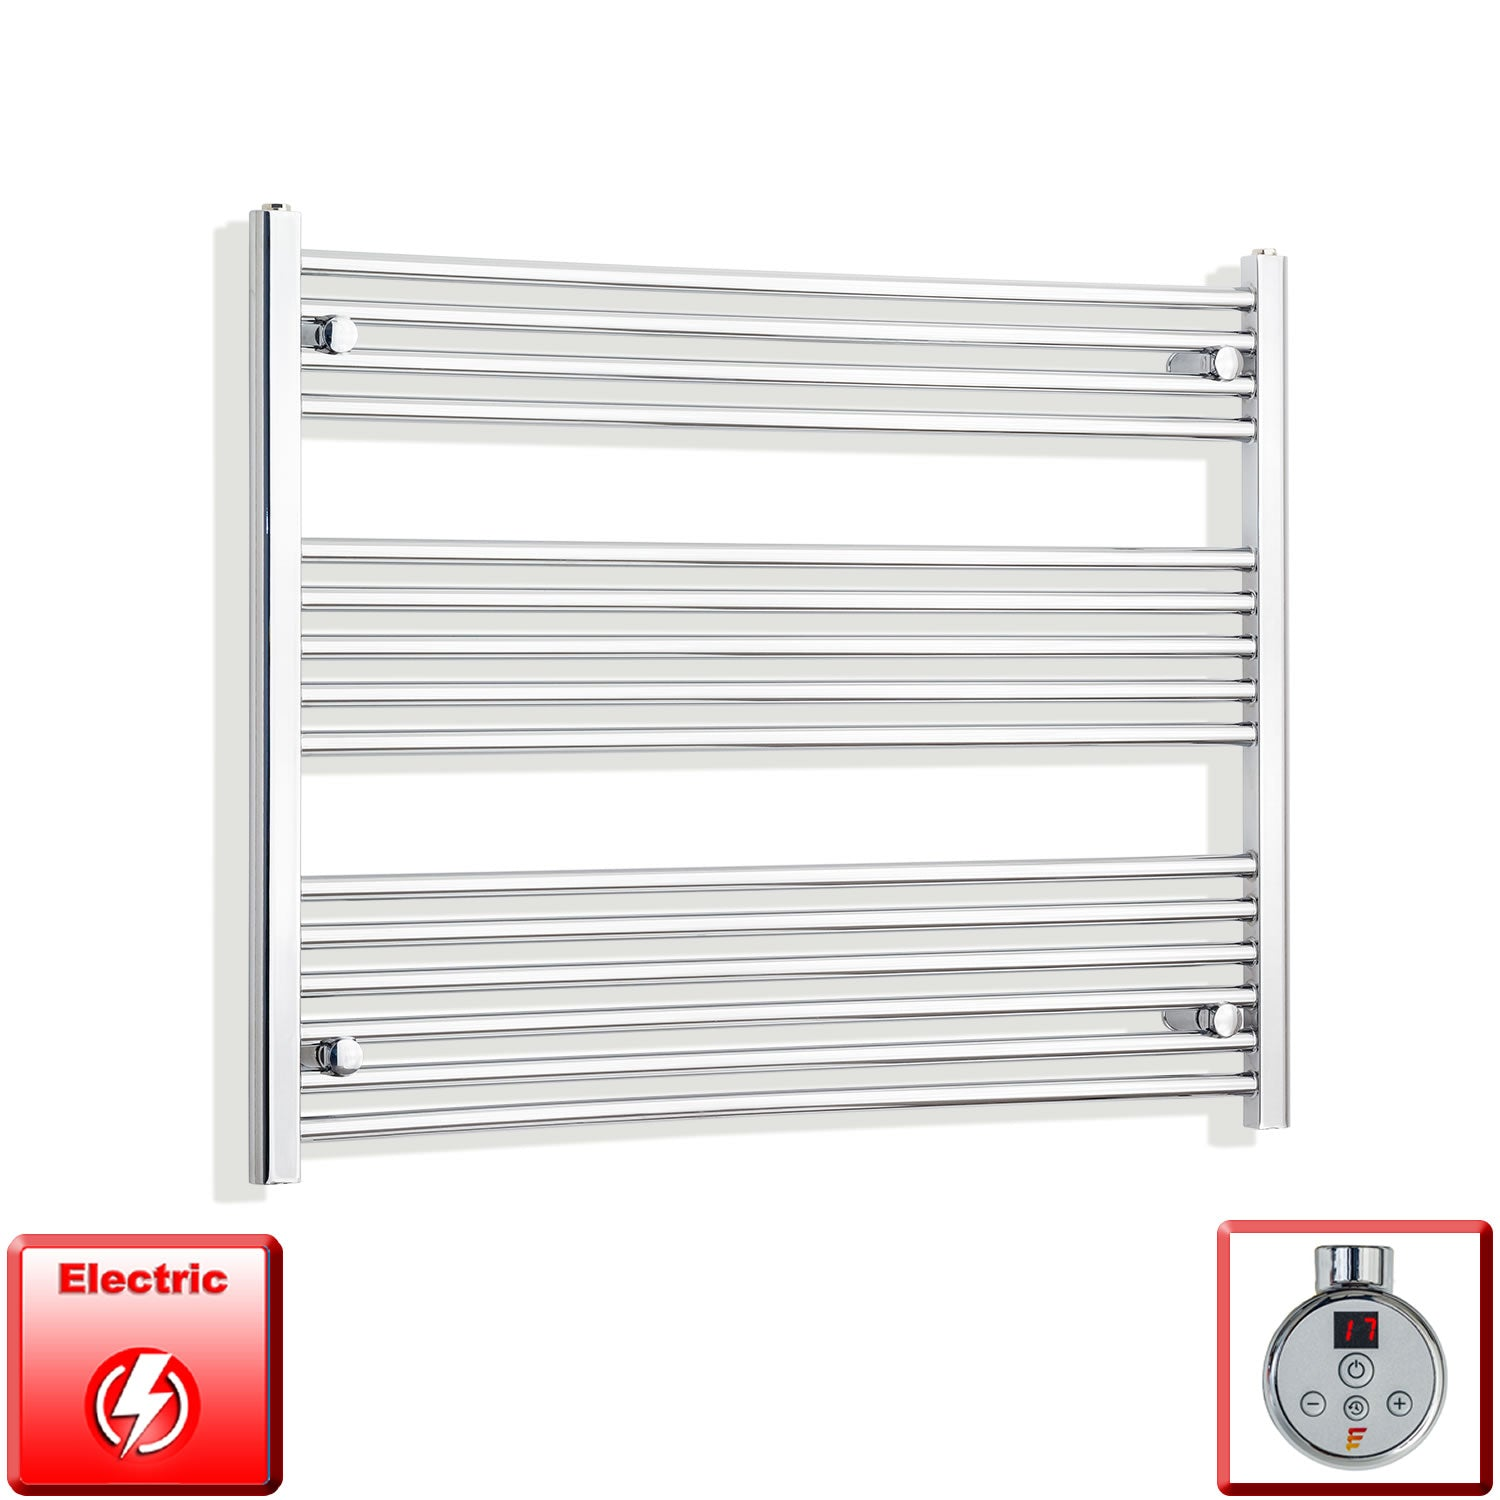 950mm Wide 800mm High Pre-Filled Chrome Electric Towel Rail Radiator With Thermostatic DIGI Element